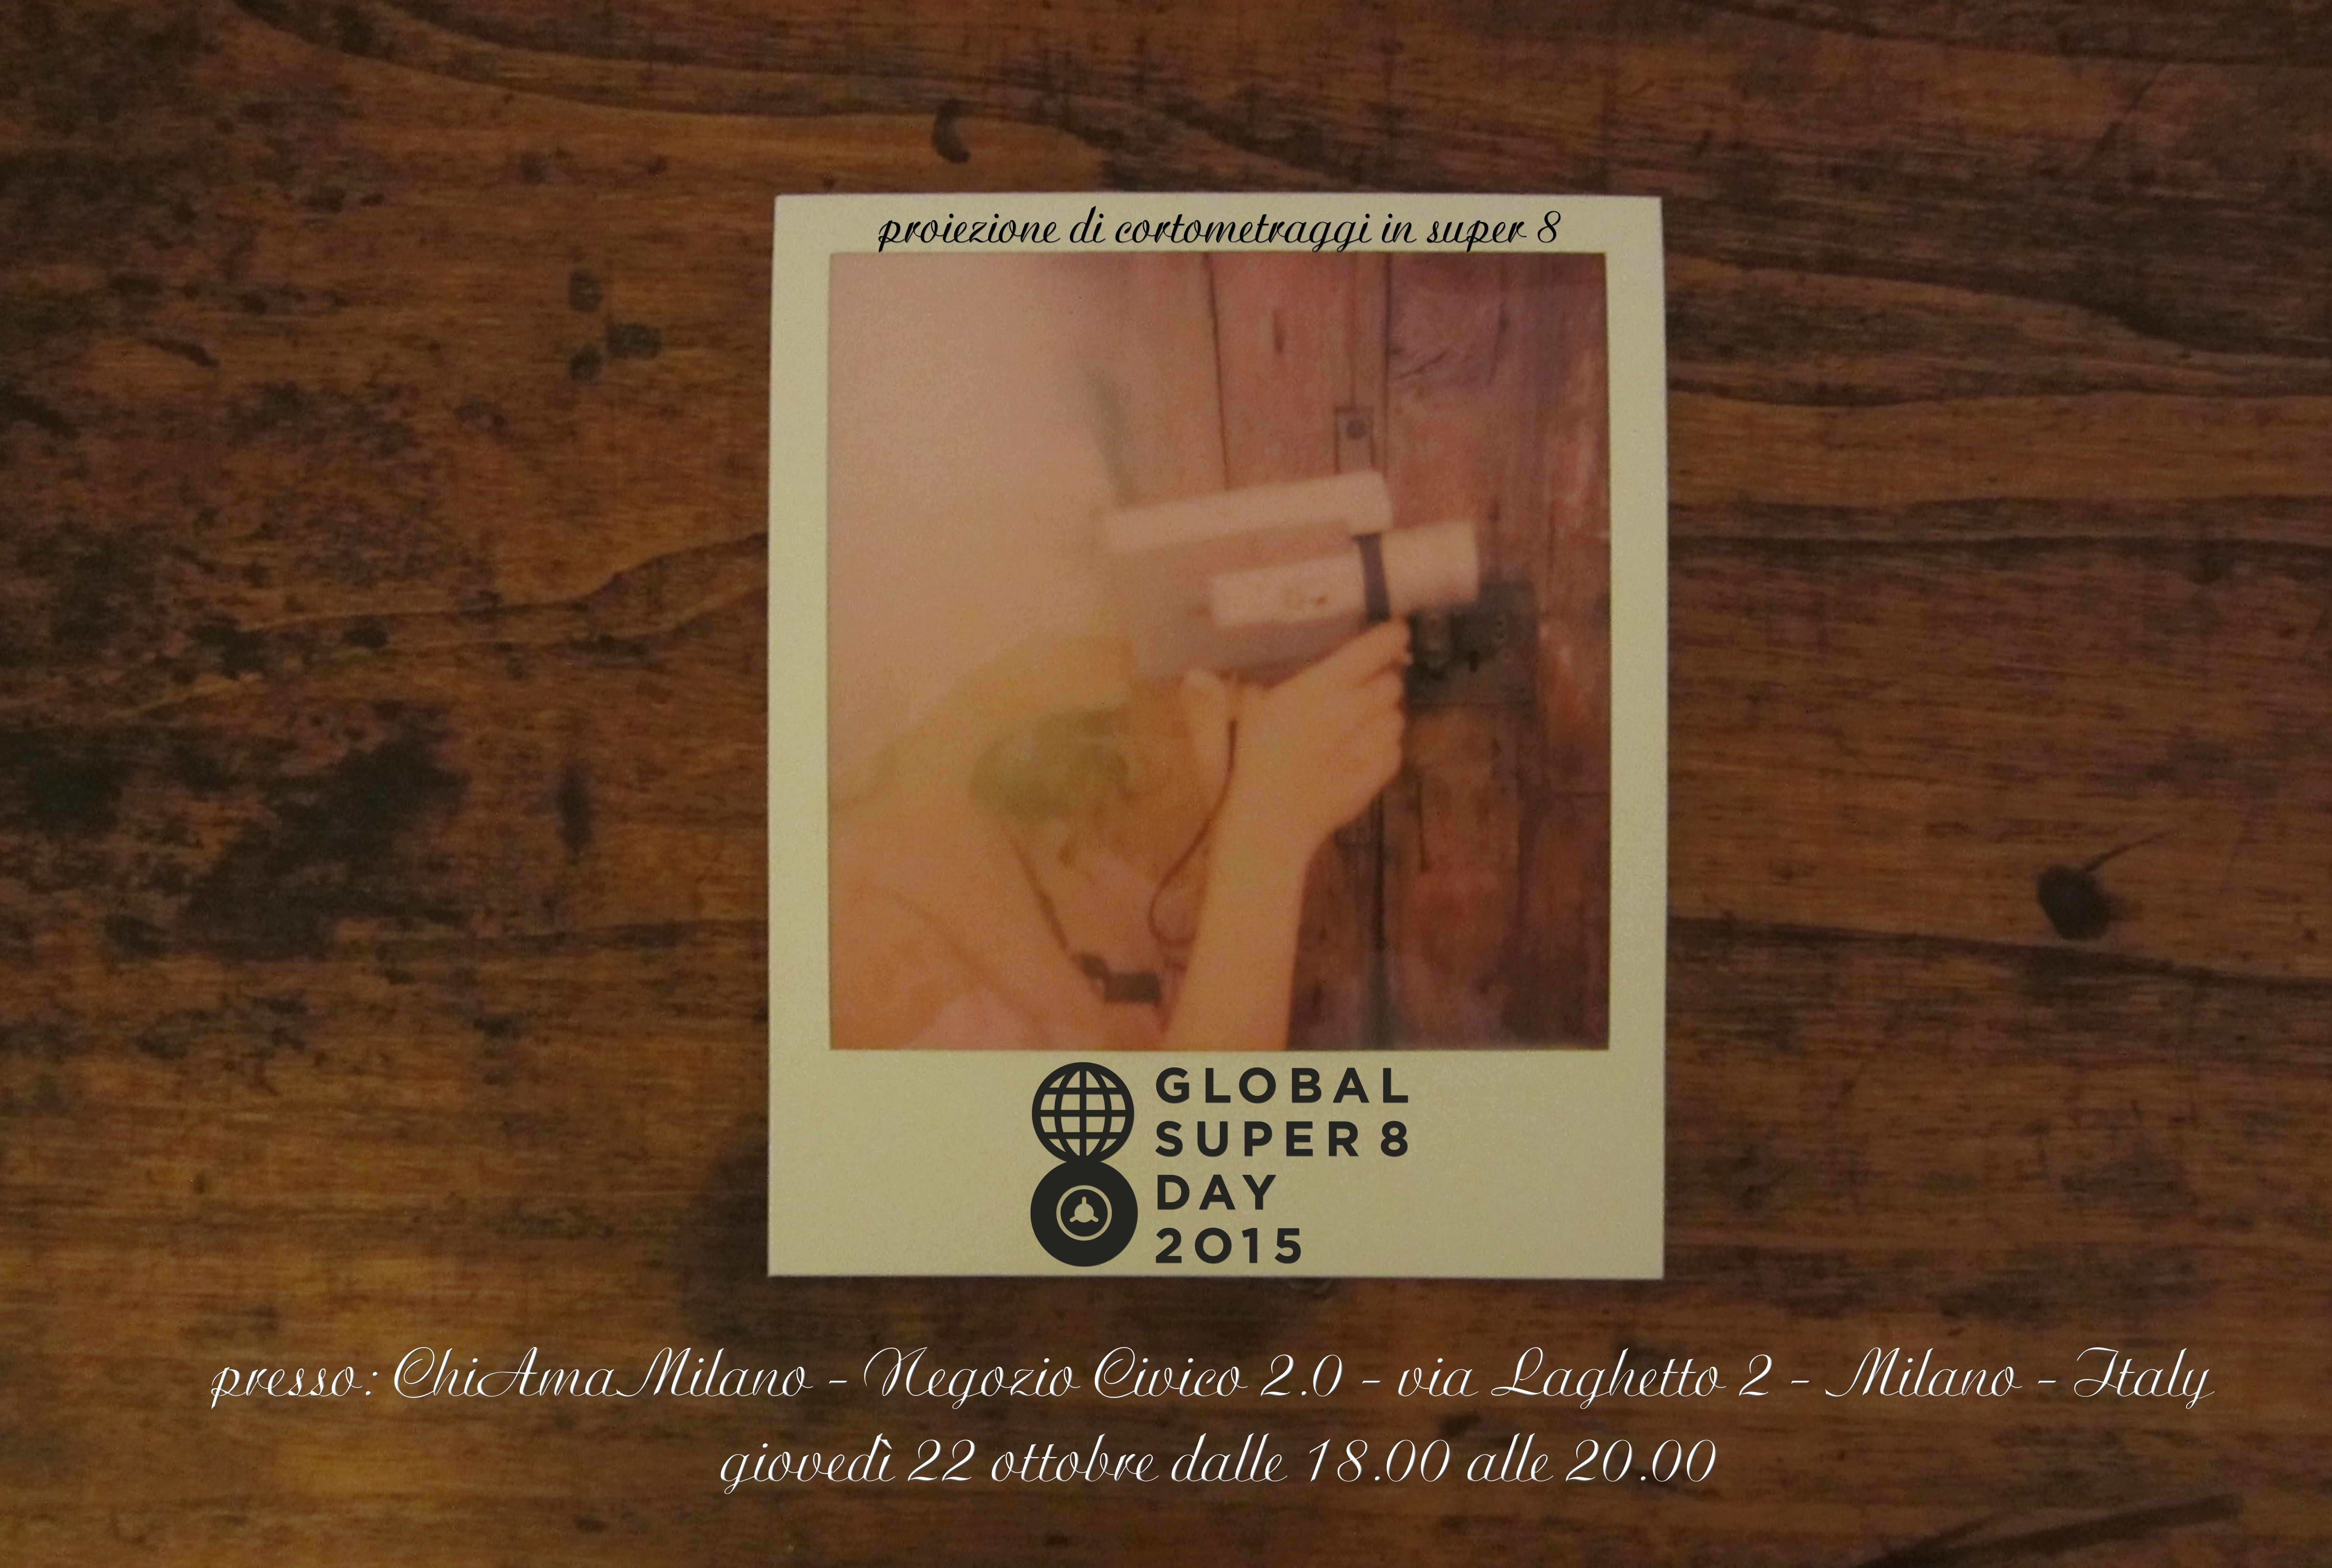 Global Super 8 Day 2015 @ Milan - Italie {JPEG}